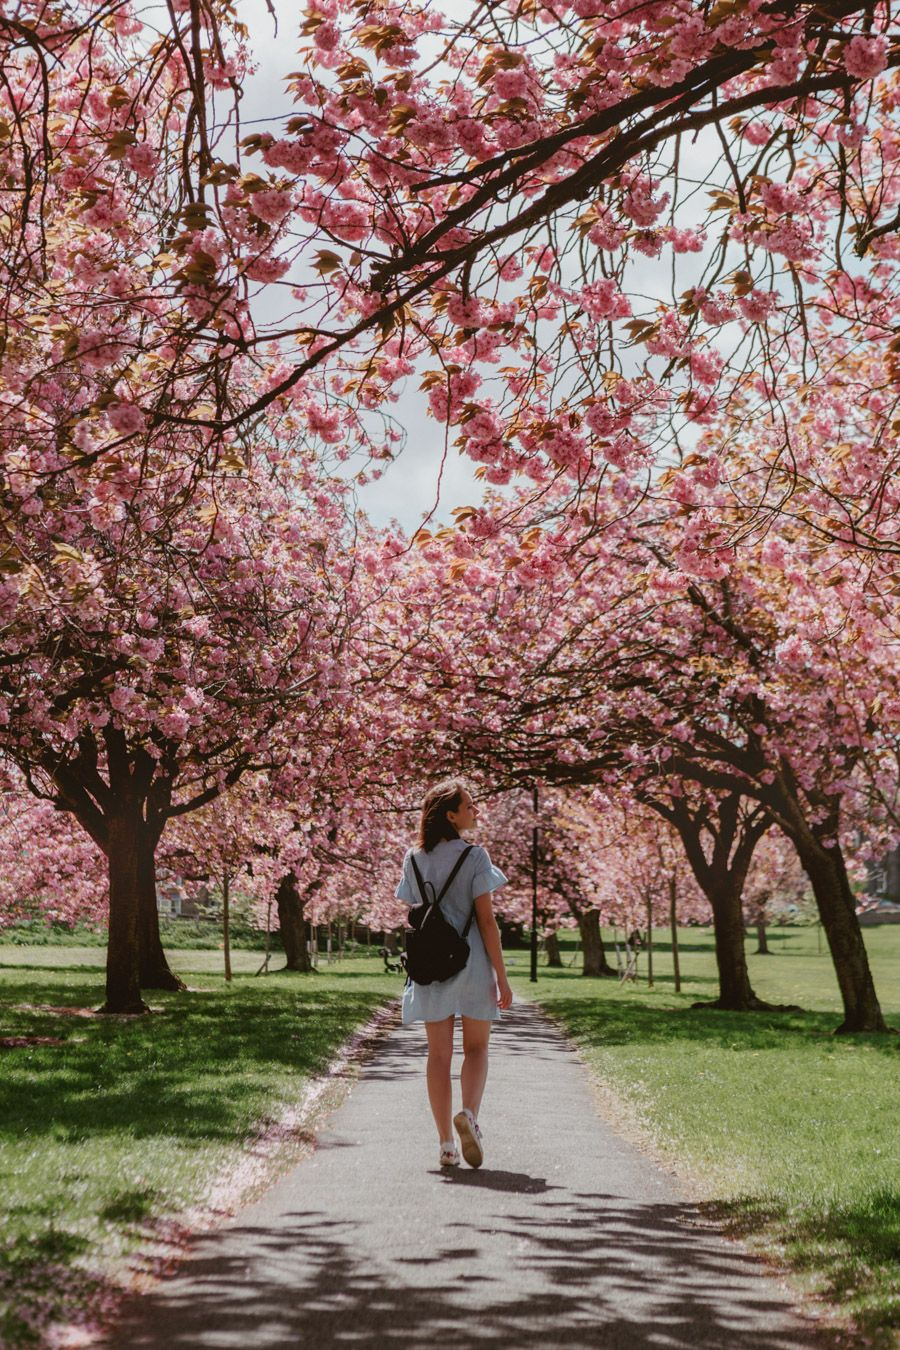 The Best Cherry Blossom In The Uk Monalogue Cherry Blossom Instagram Blossom Trees